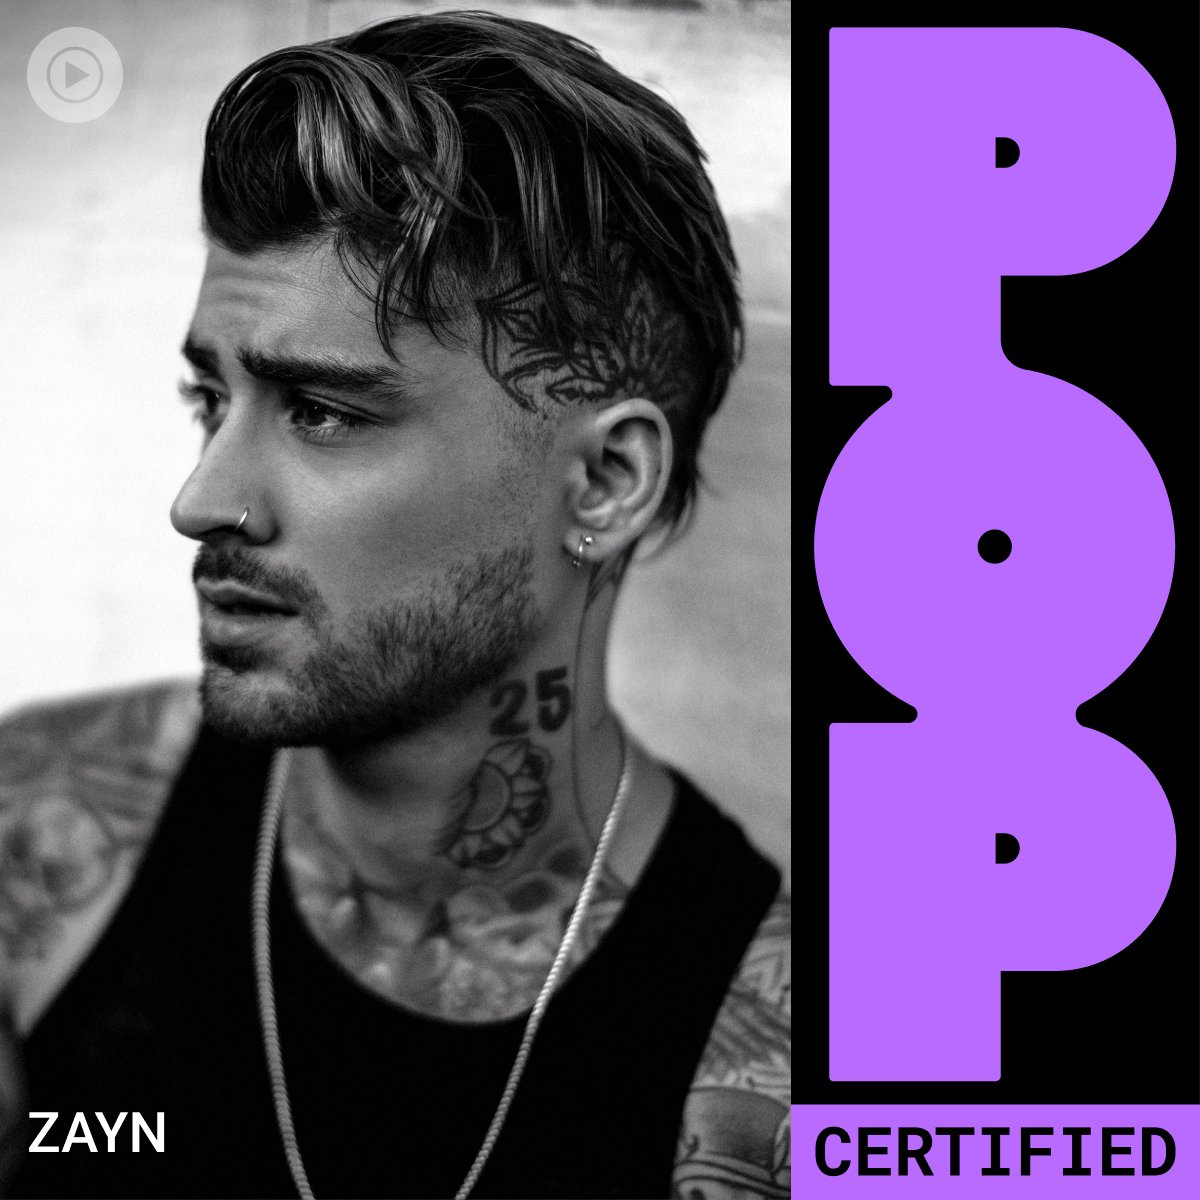 ZAYN ON THE COVER OF @YOUTUBEMUSIC'S POP CERTIFIED PLAYLIST //